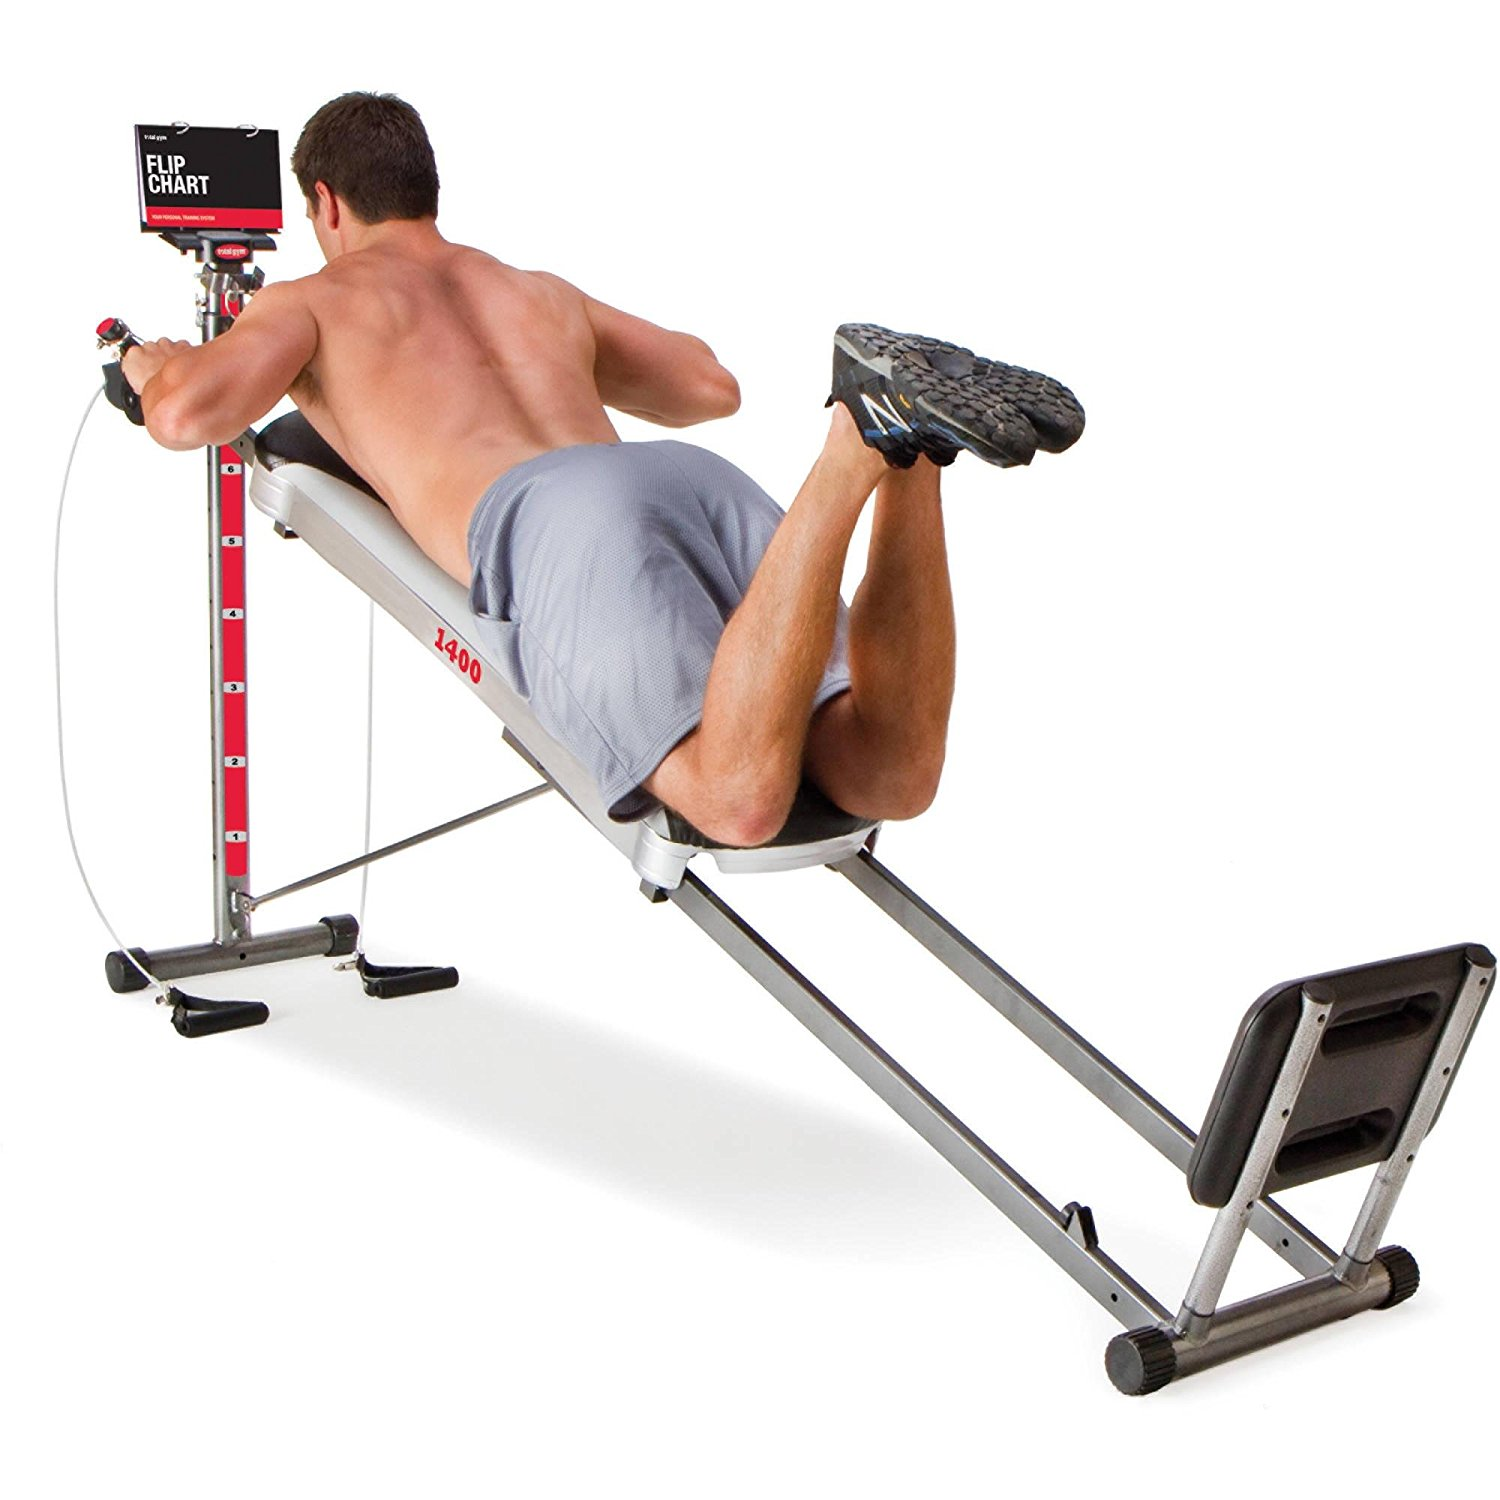 Total Gym 1400 Deluxe Home Fitness Machine